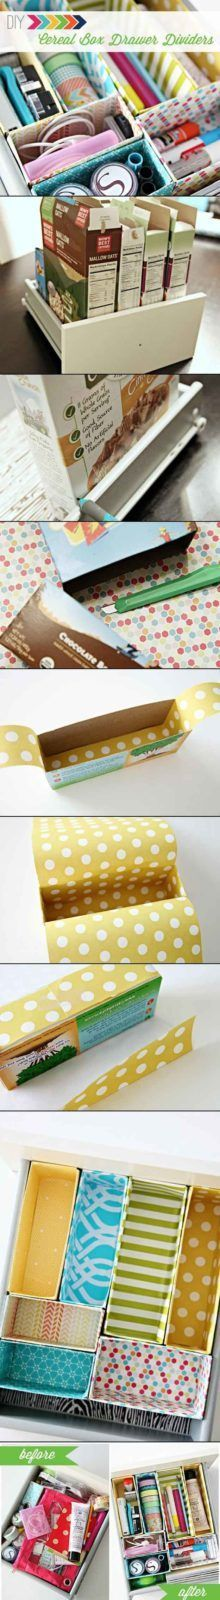 DIY Cereal Box Organizer and Divider Tutorials | https://diyprojects.com/28-things-you-can-make-from-cereal-boxes/